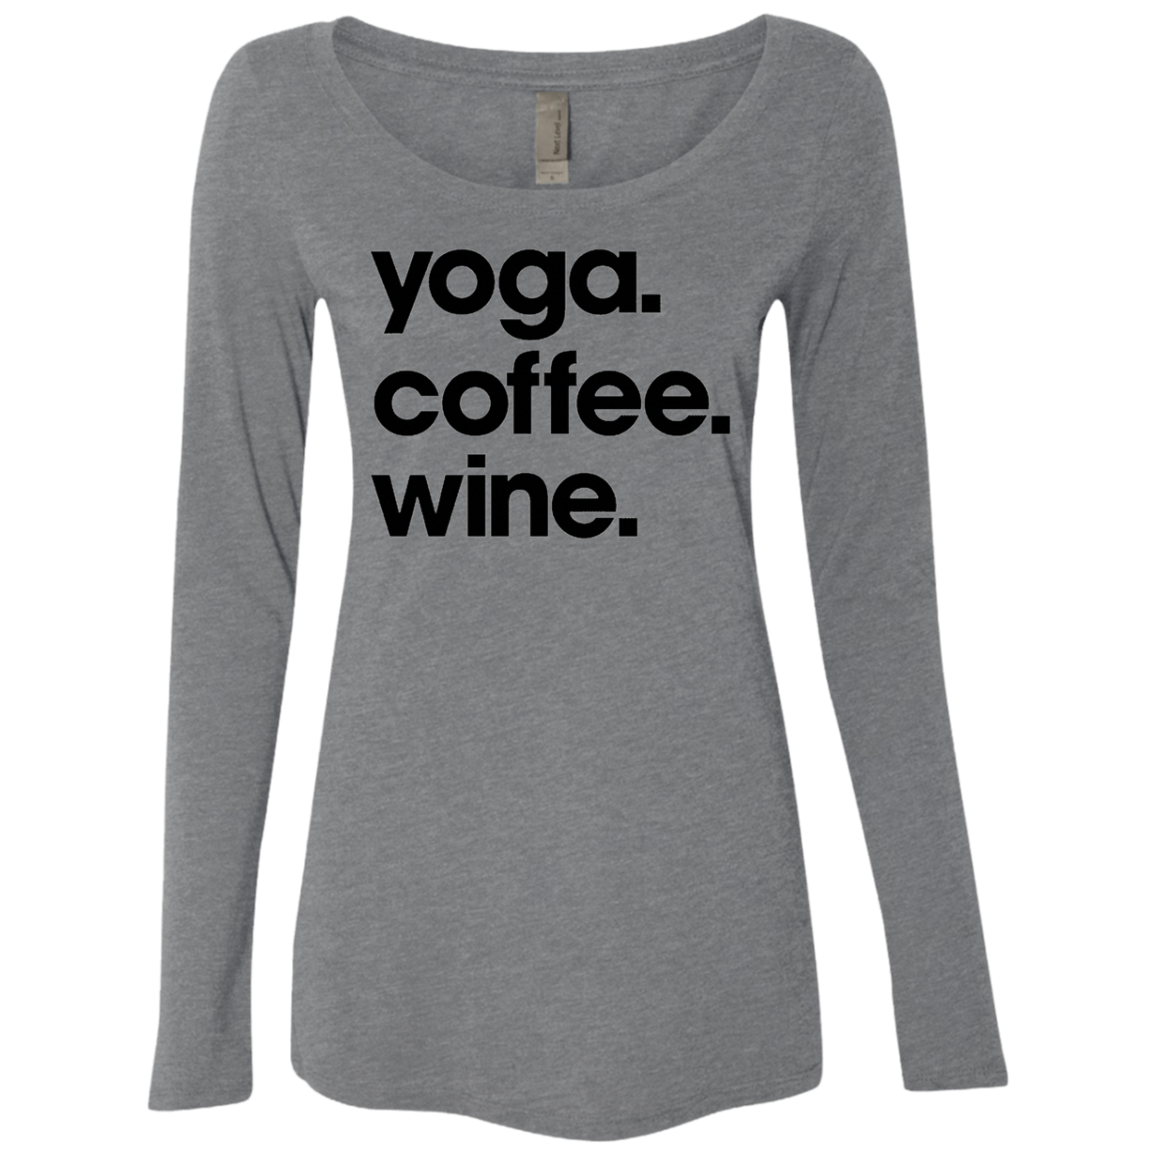 Yoga Coffee Wine Women's Long Sleeve Tee